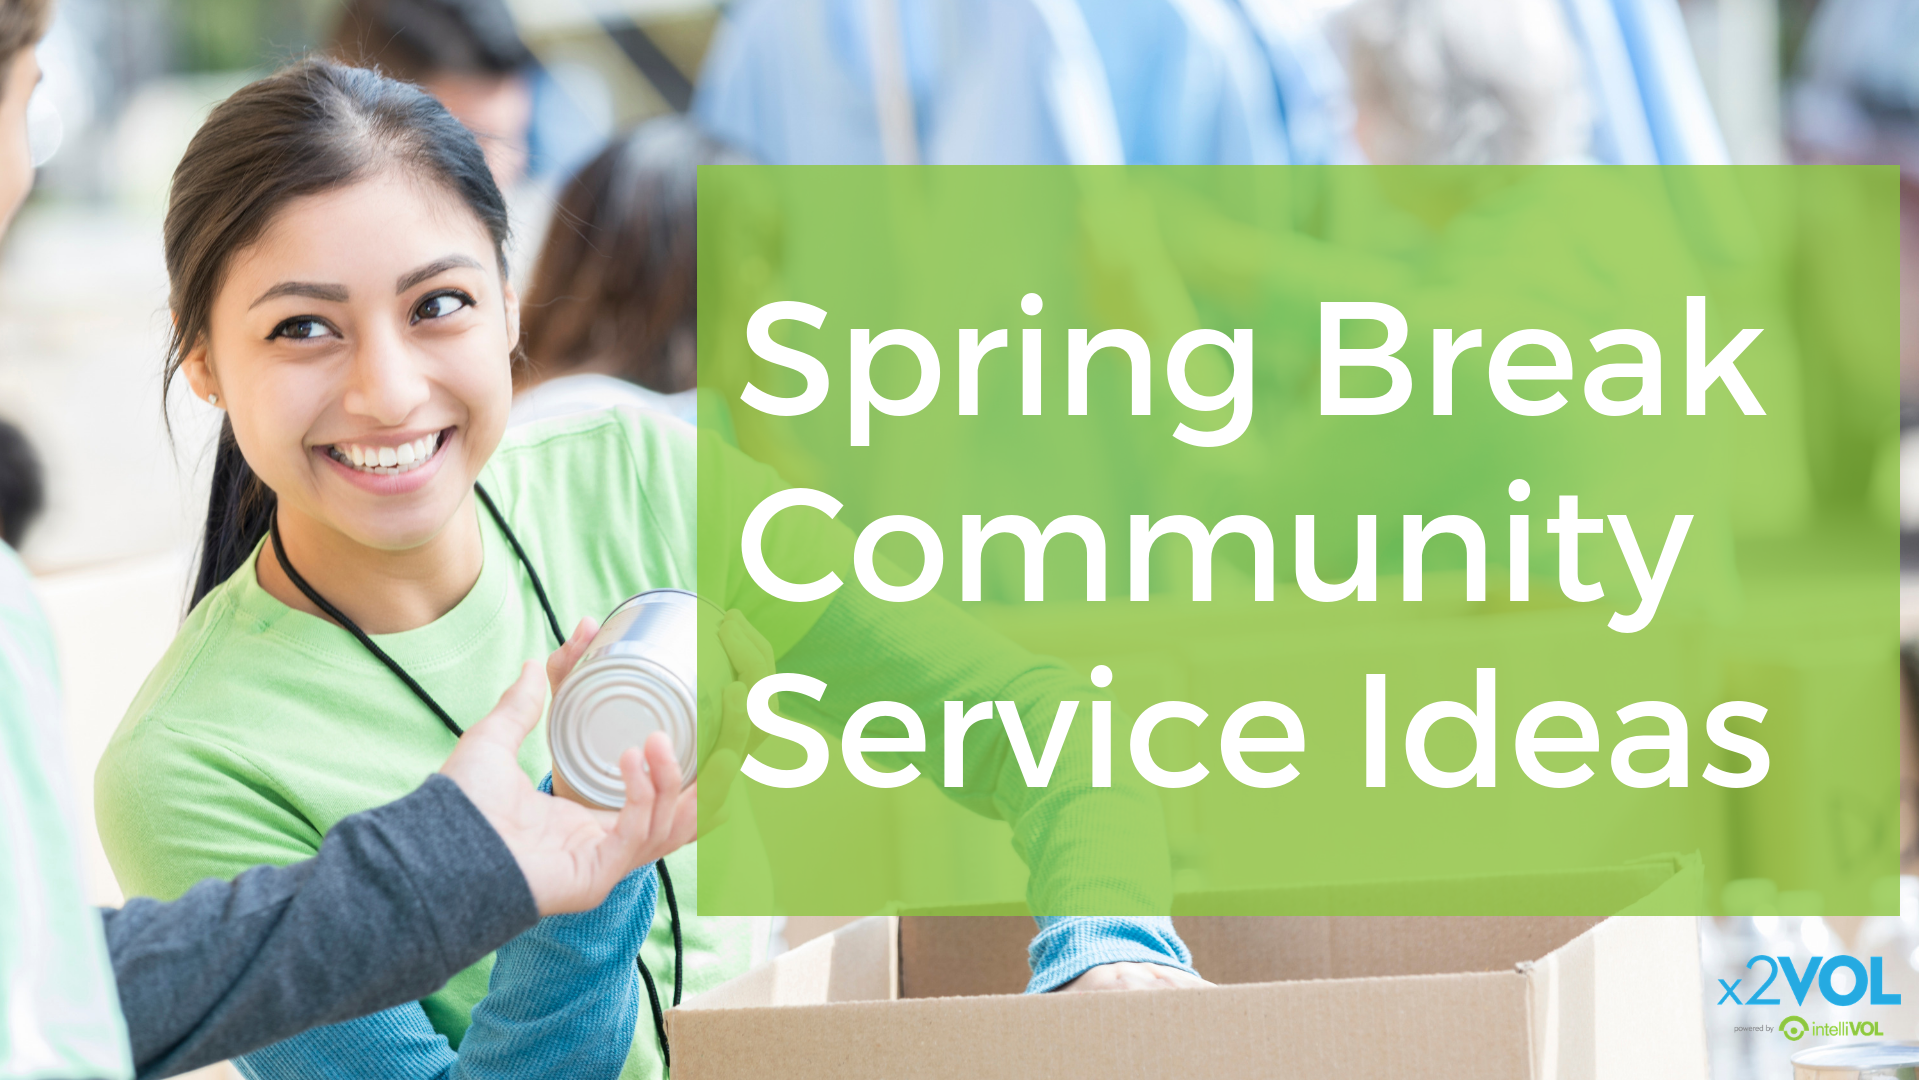 Spring Break Community Service Ideas